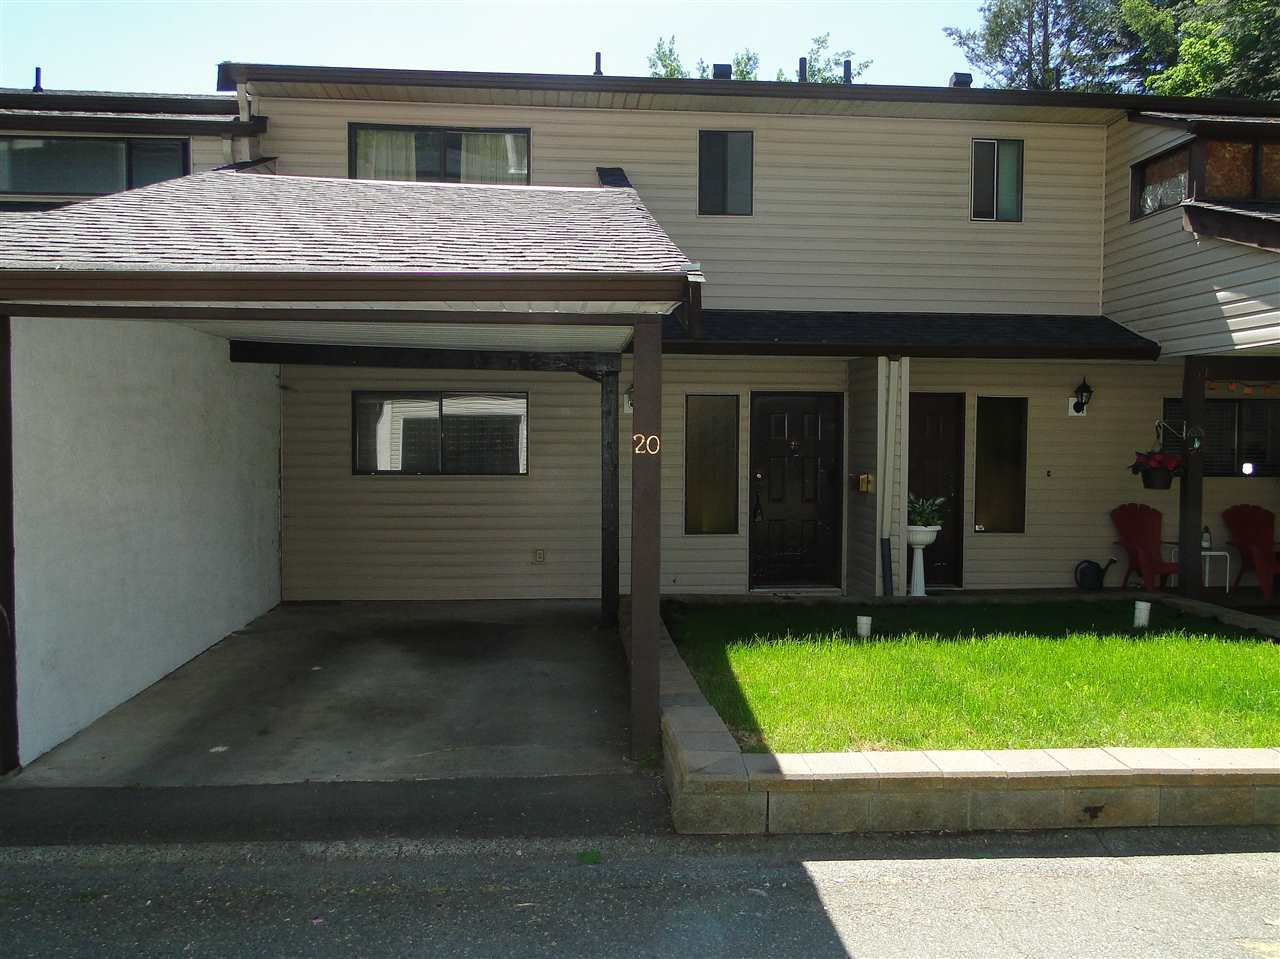 """Main Photo: 20 32705 FRASER Crescent in Mission: Mission BC Townhouse for sale in """"Black Bear Estates"""" : MLS®# R2070251"""